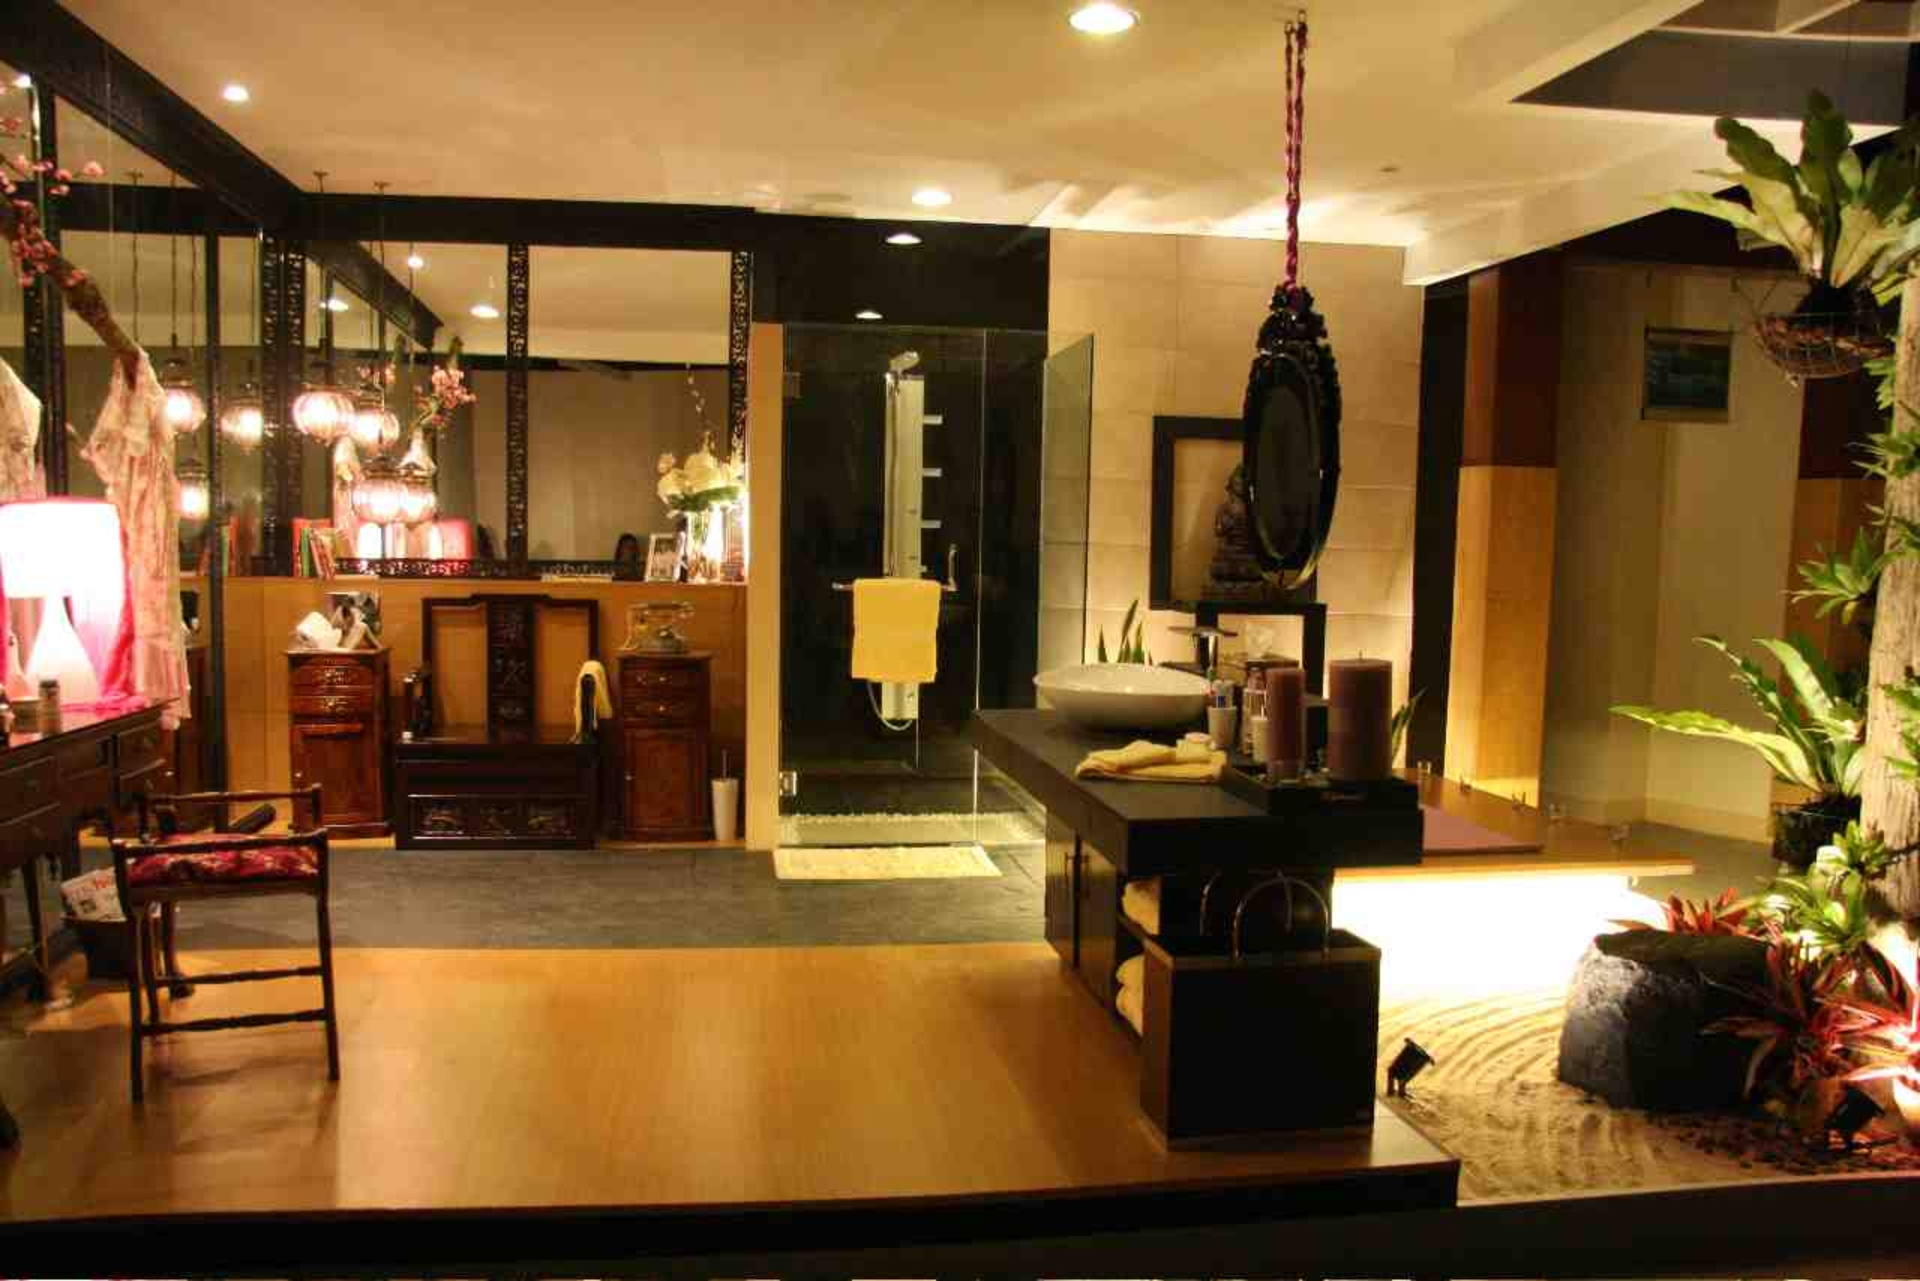 Oriental Interior Design Ideas - Decobizz.com